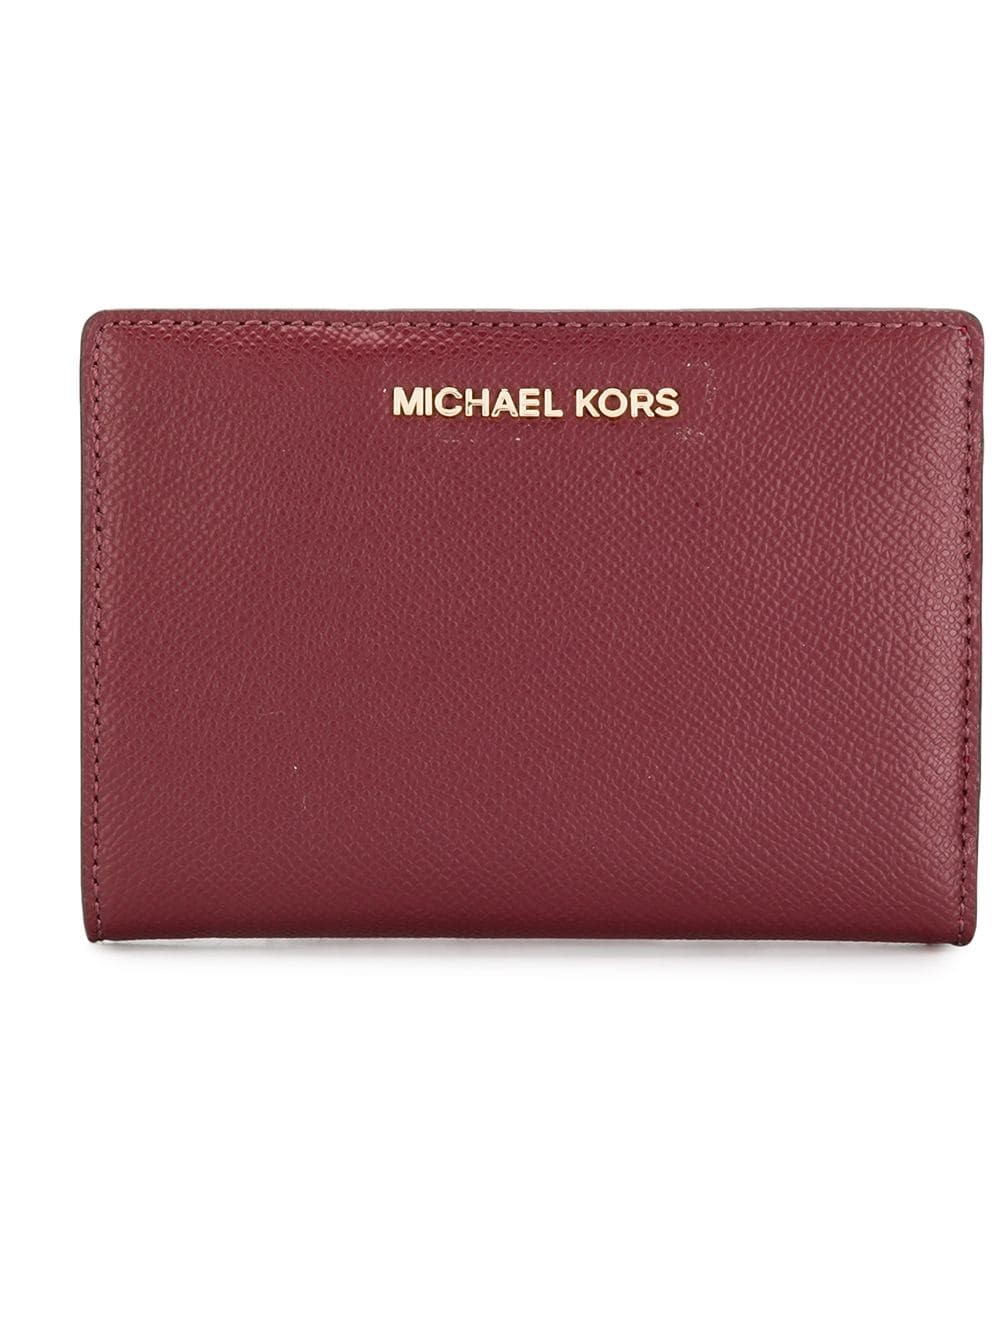 michael kors mk WALLET available on montiboutique.com - 26107 a899a0e98